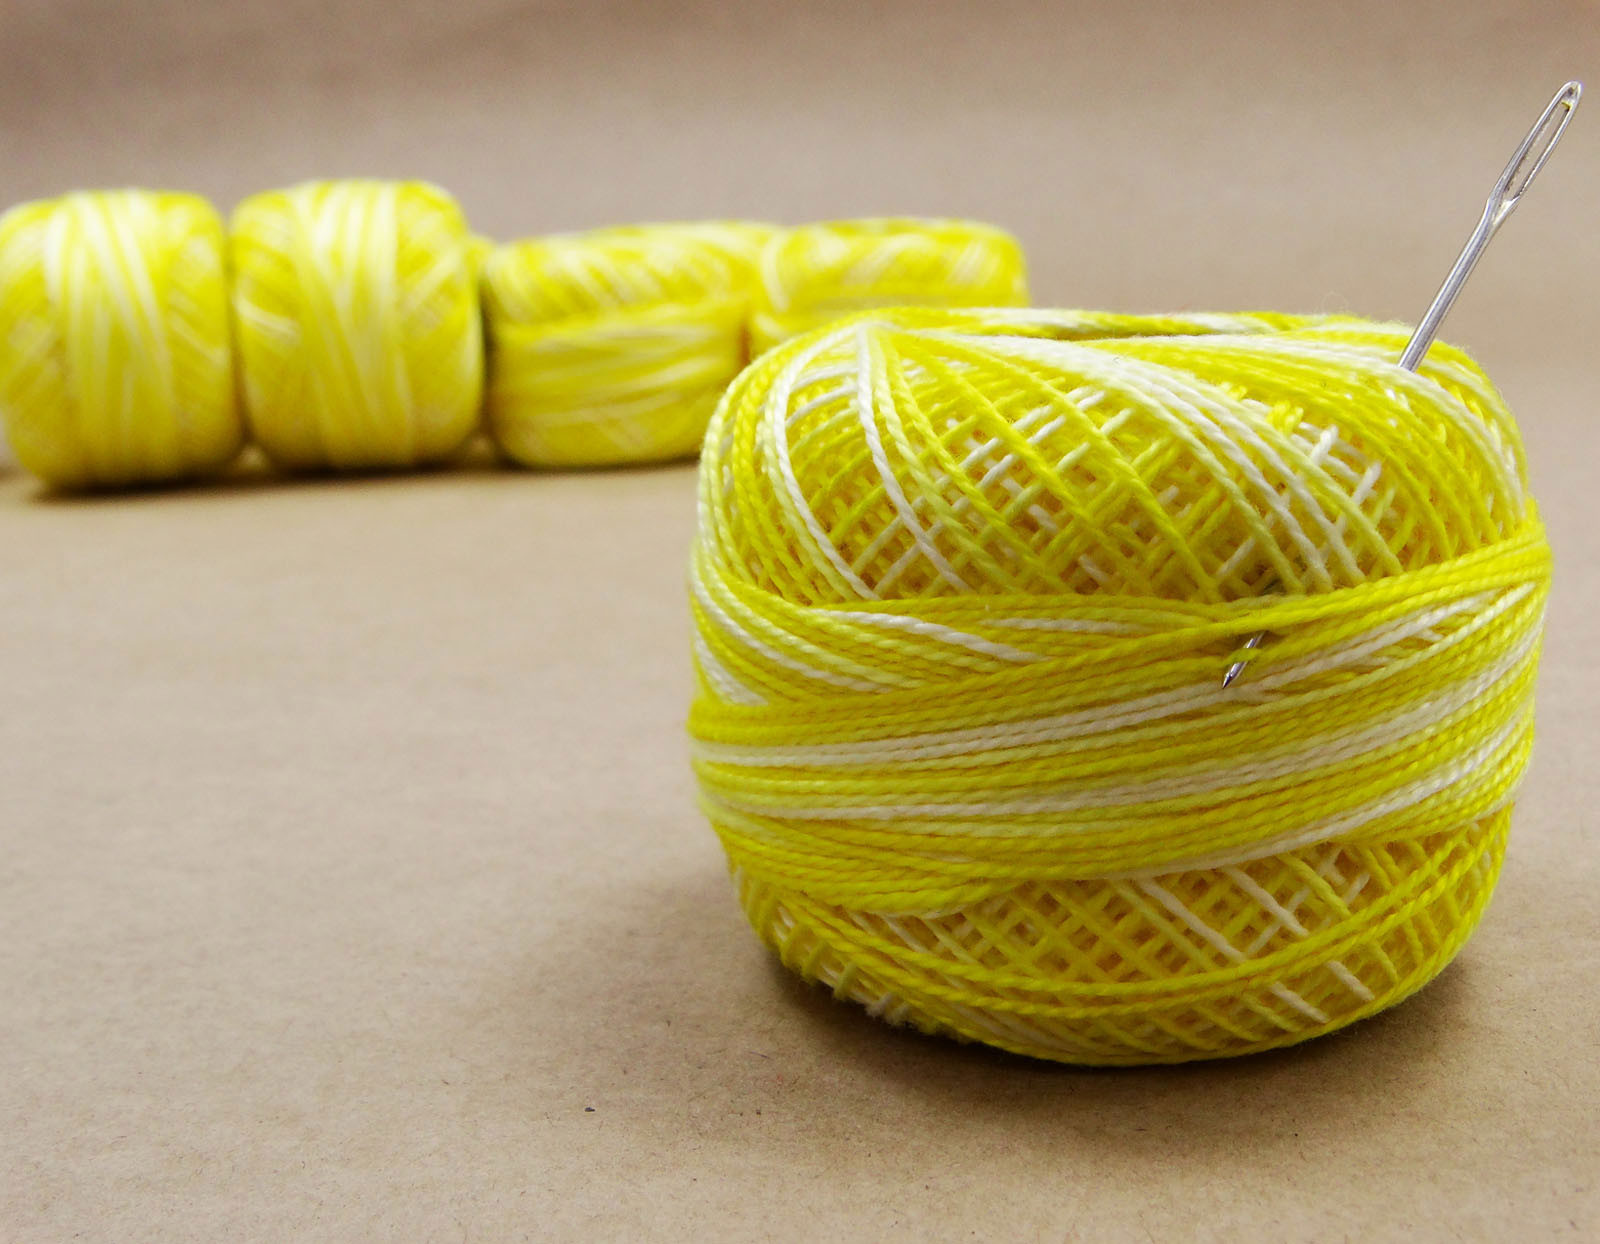 Anchor Crochet Cotton Variegated Yarn Embroidery Knitting